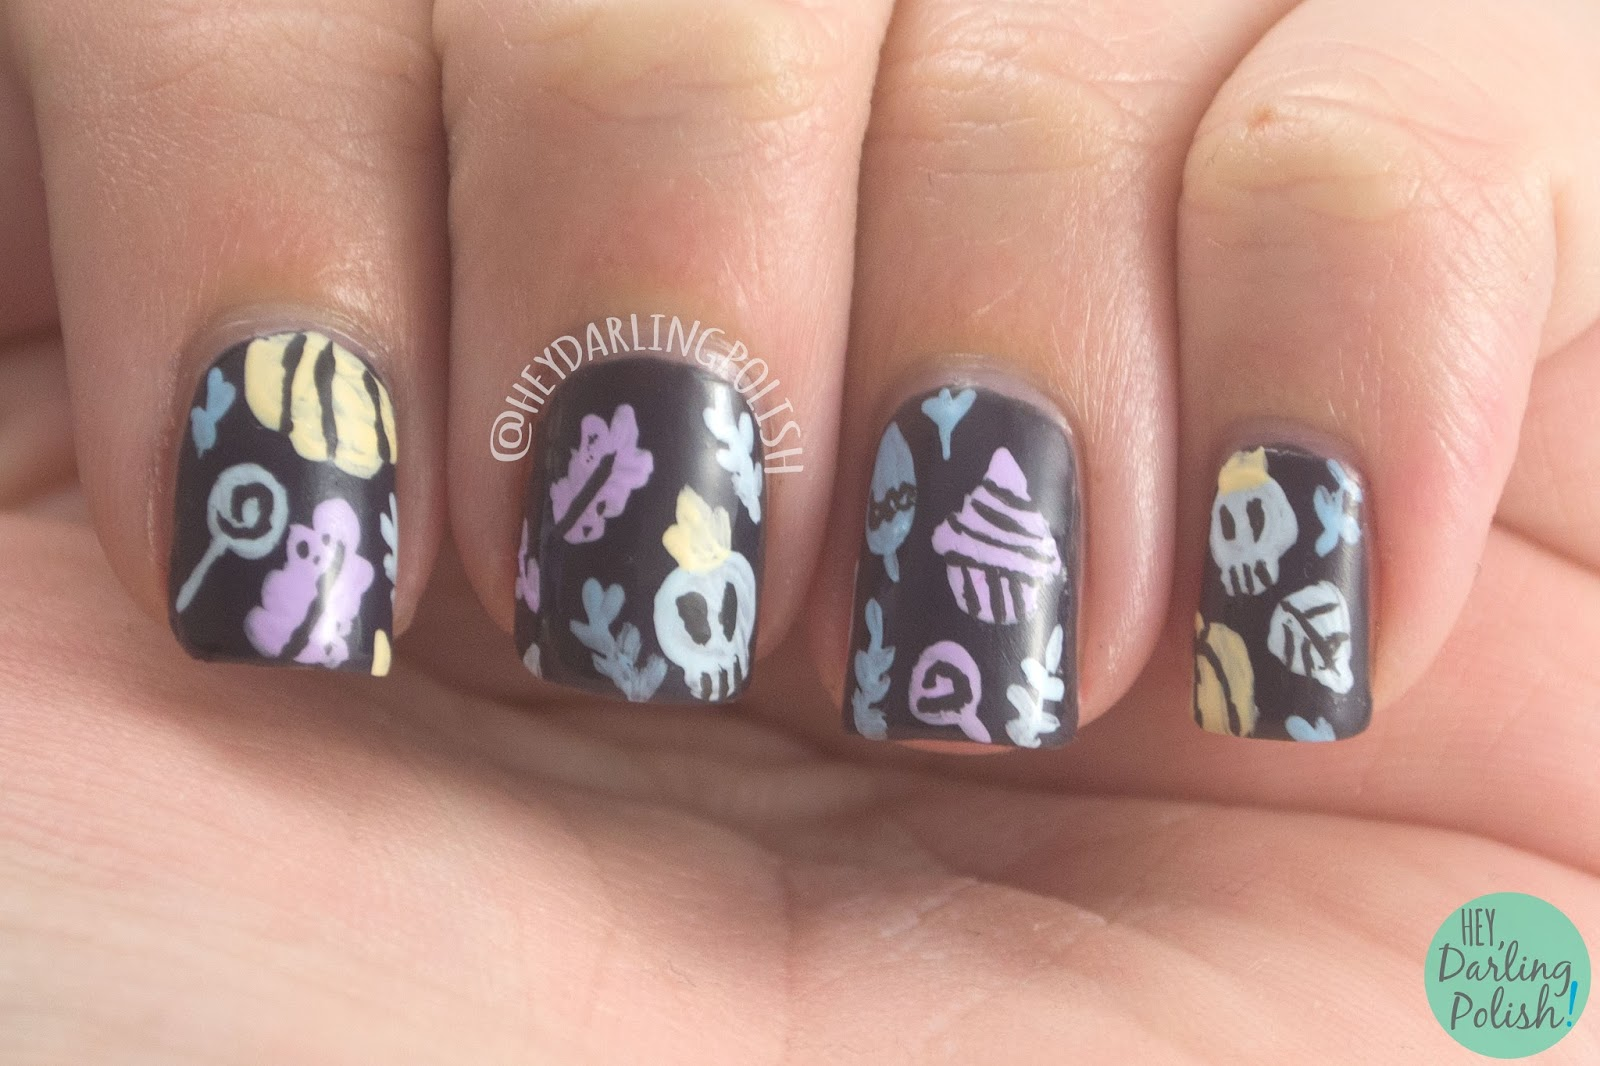 nails, nail art, nail polish, Halloween, pumpkins, Hey Darling Polish, hobby polish bloggers,